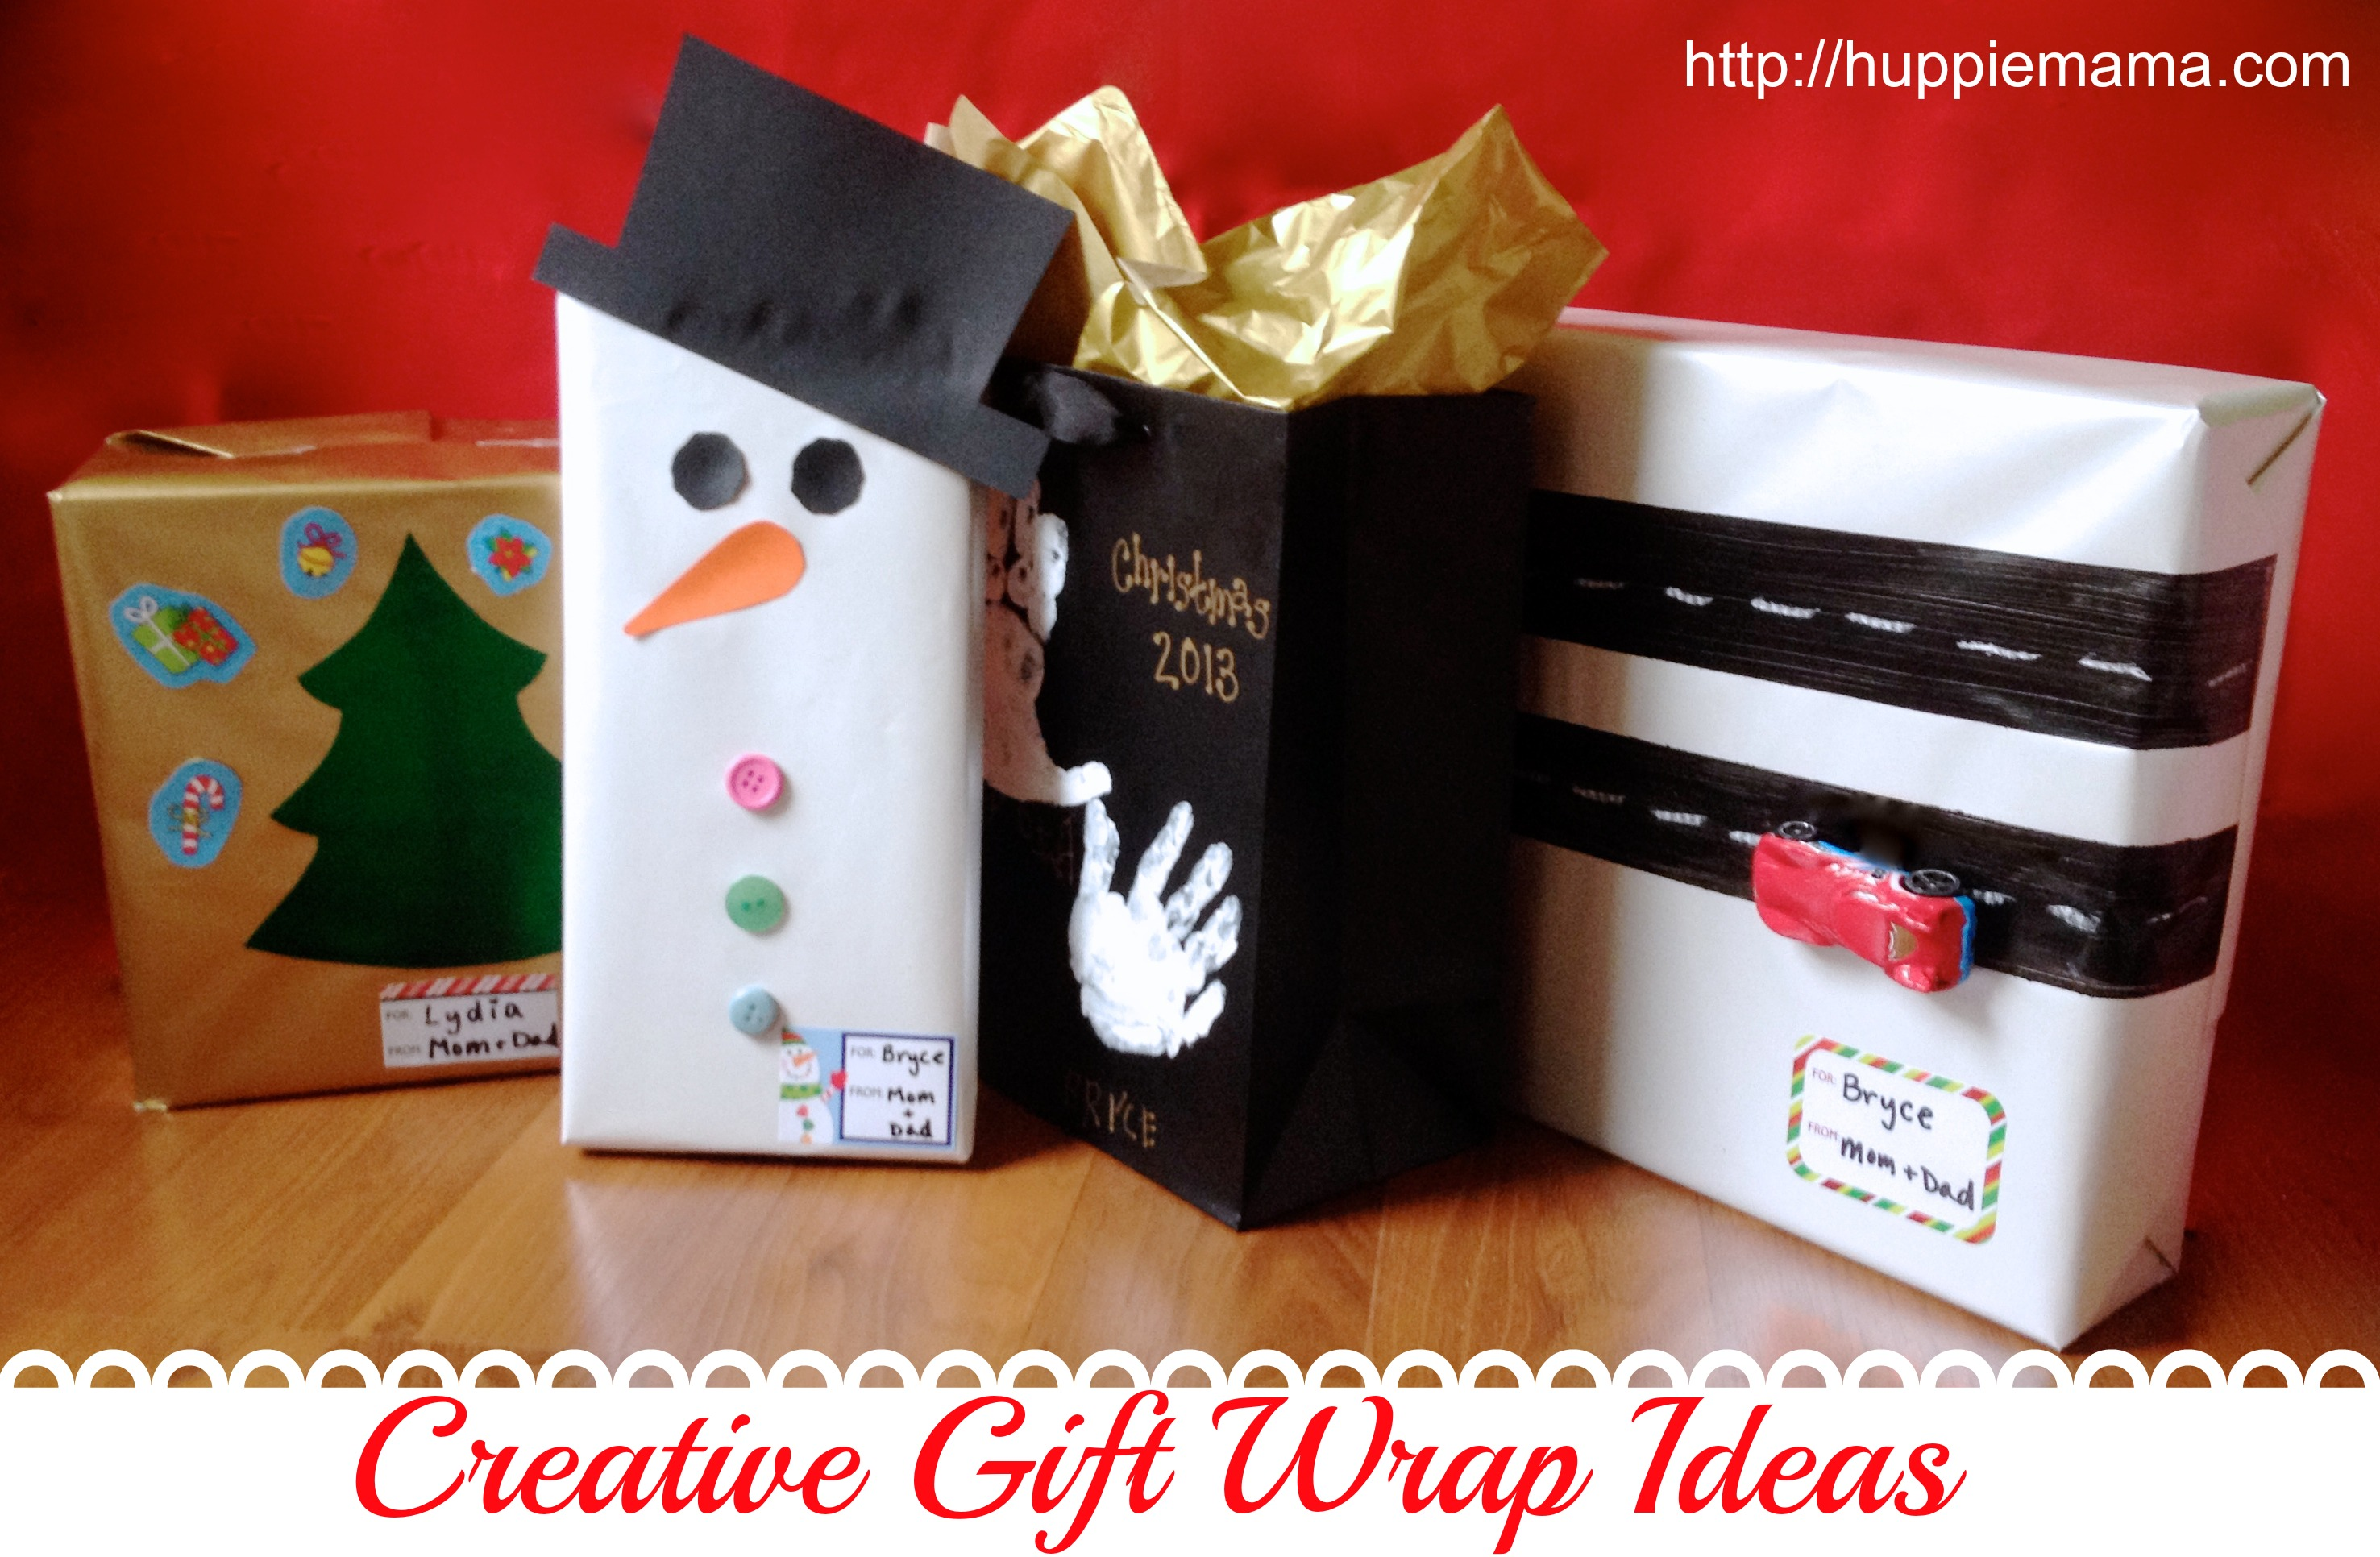 Creative gift wrapping ideas our potluck family negle Image collections